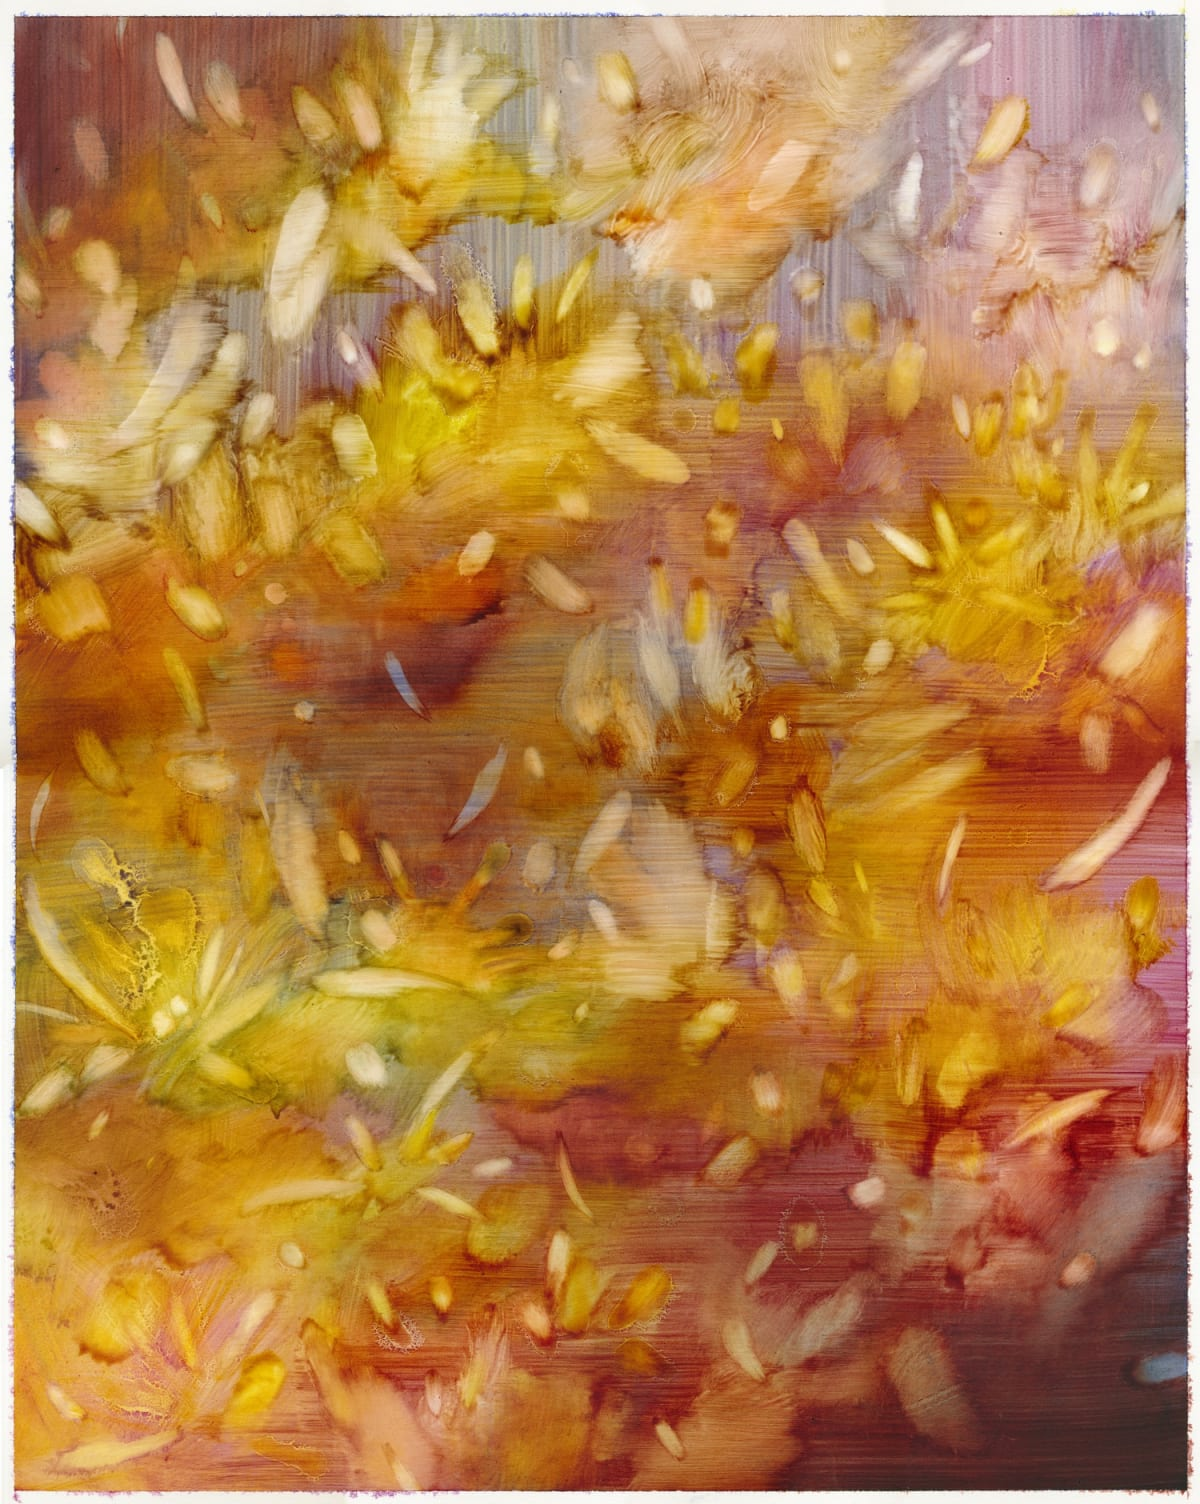 Sarah Biggs, Superbloom, 2019